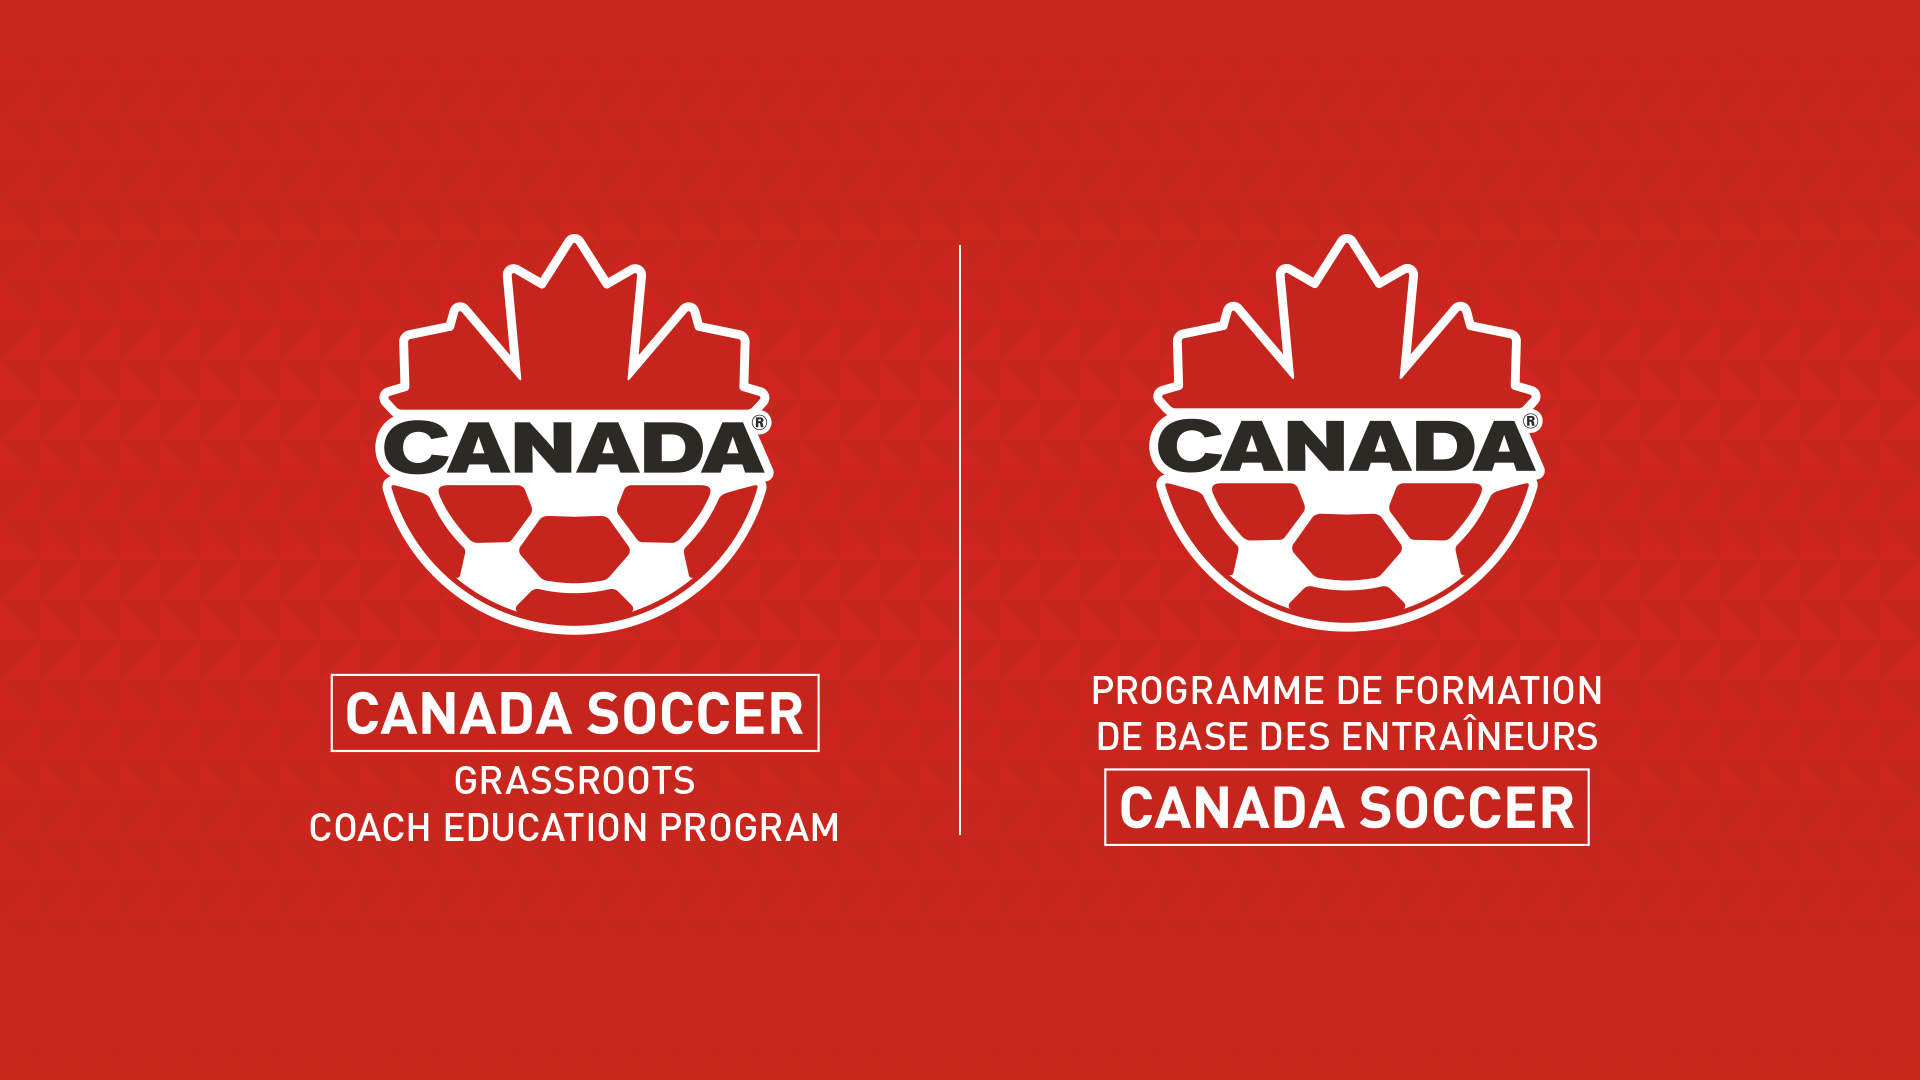 Canada Soccer Grassroots Coach Education Program